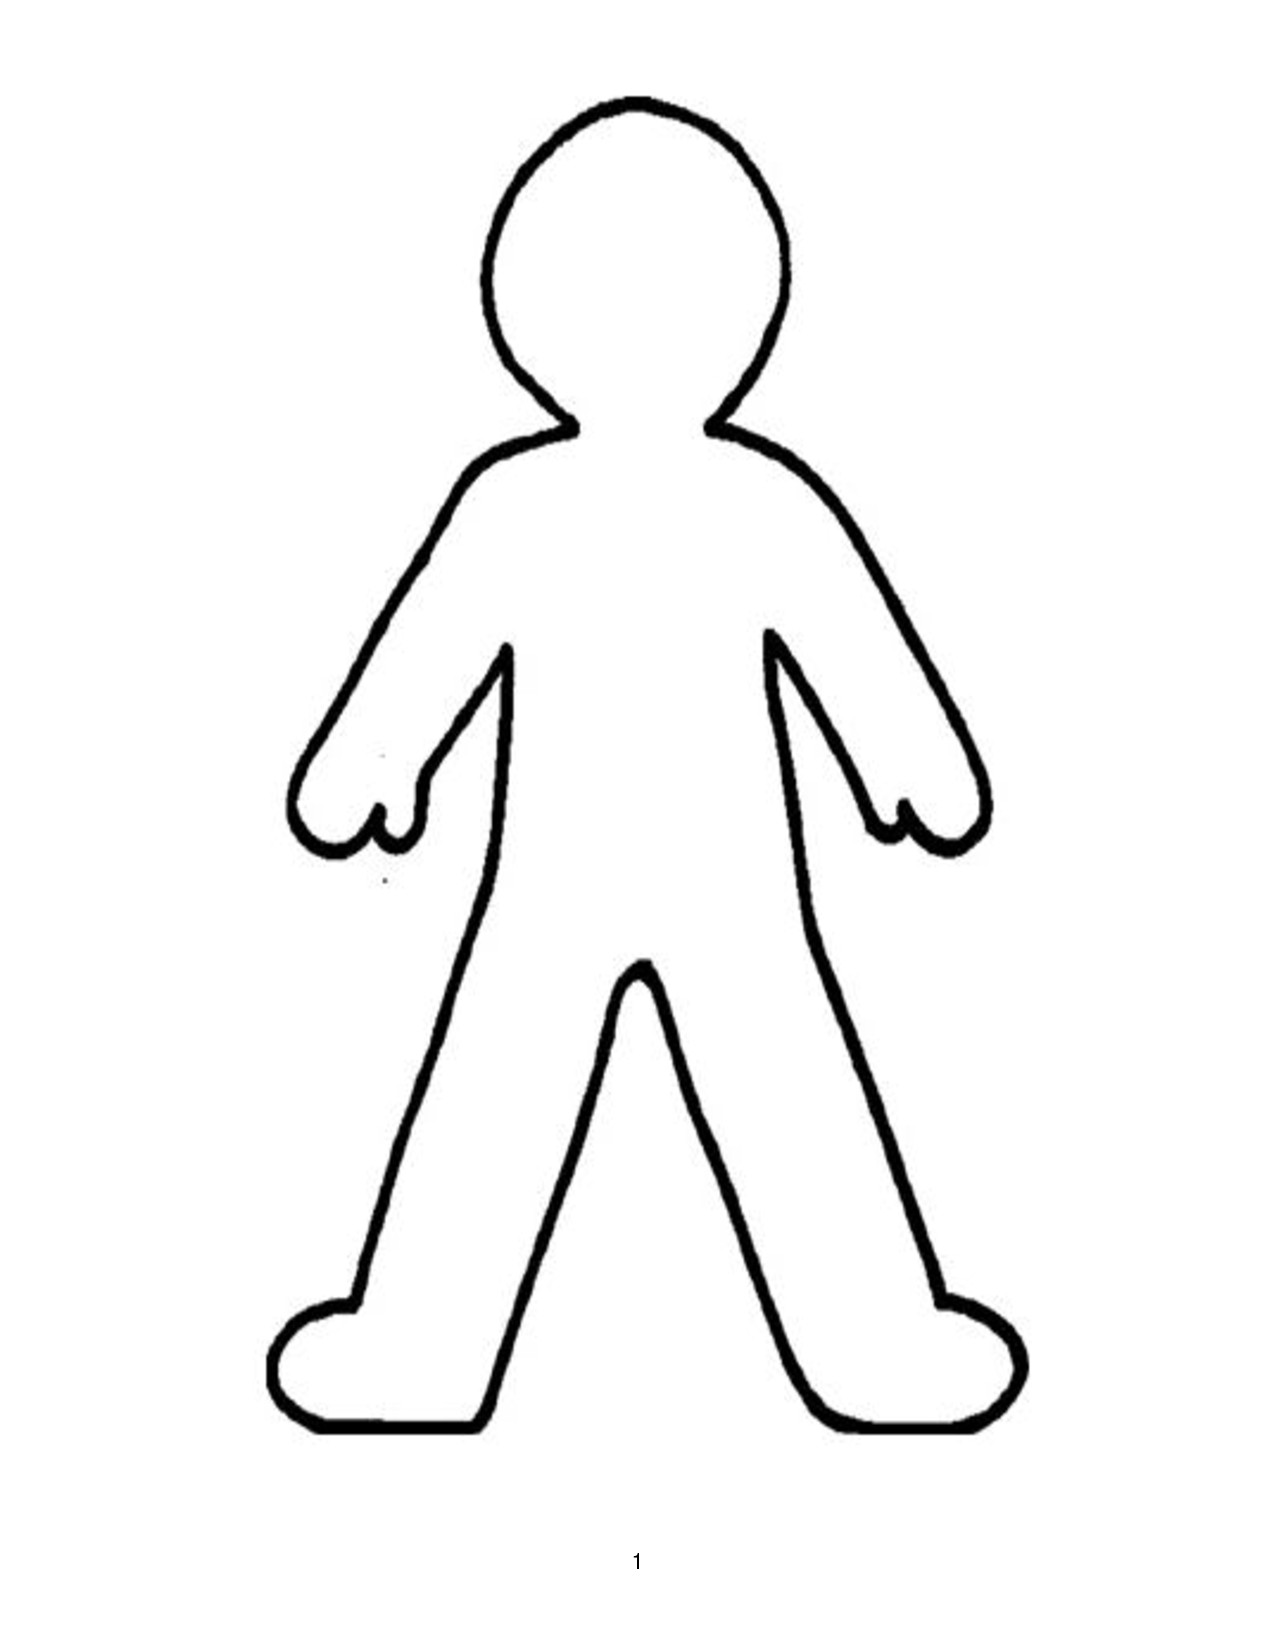 kid body outline coloring page head flashcard the learning site page coloring outline kid body